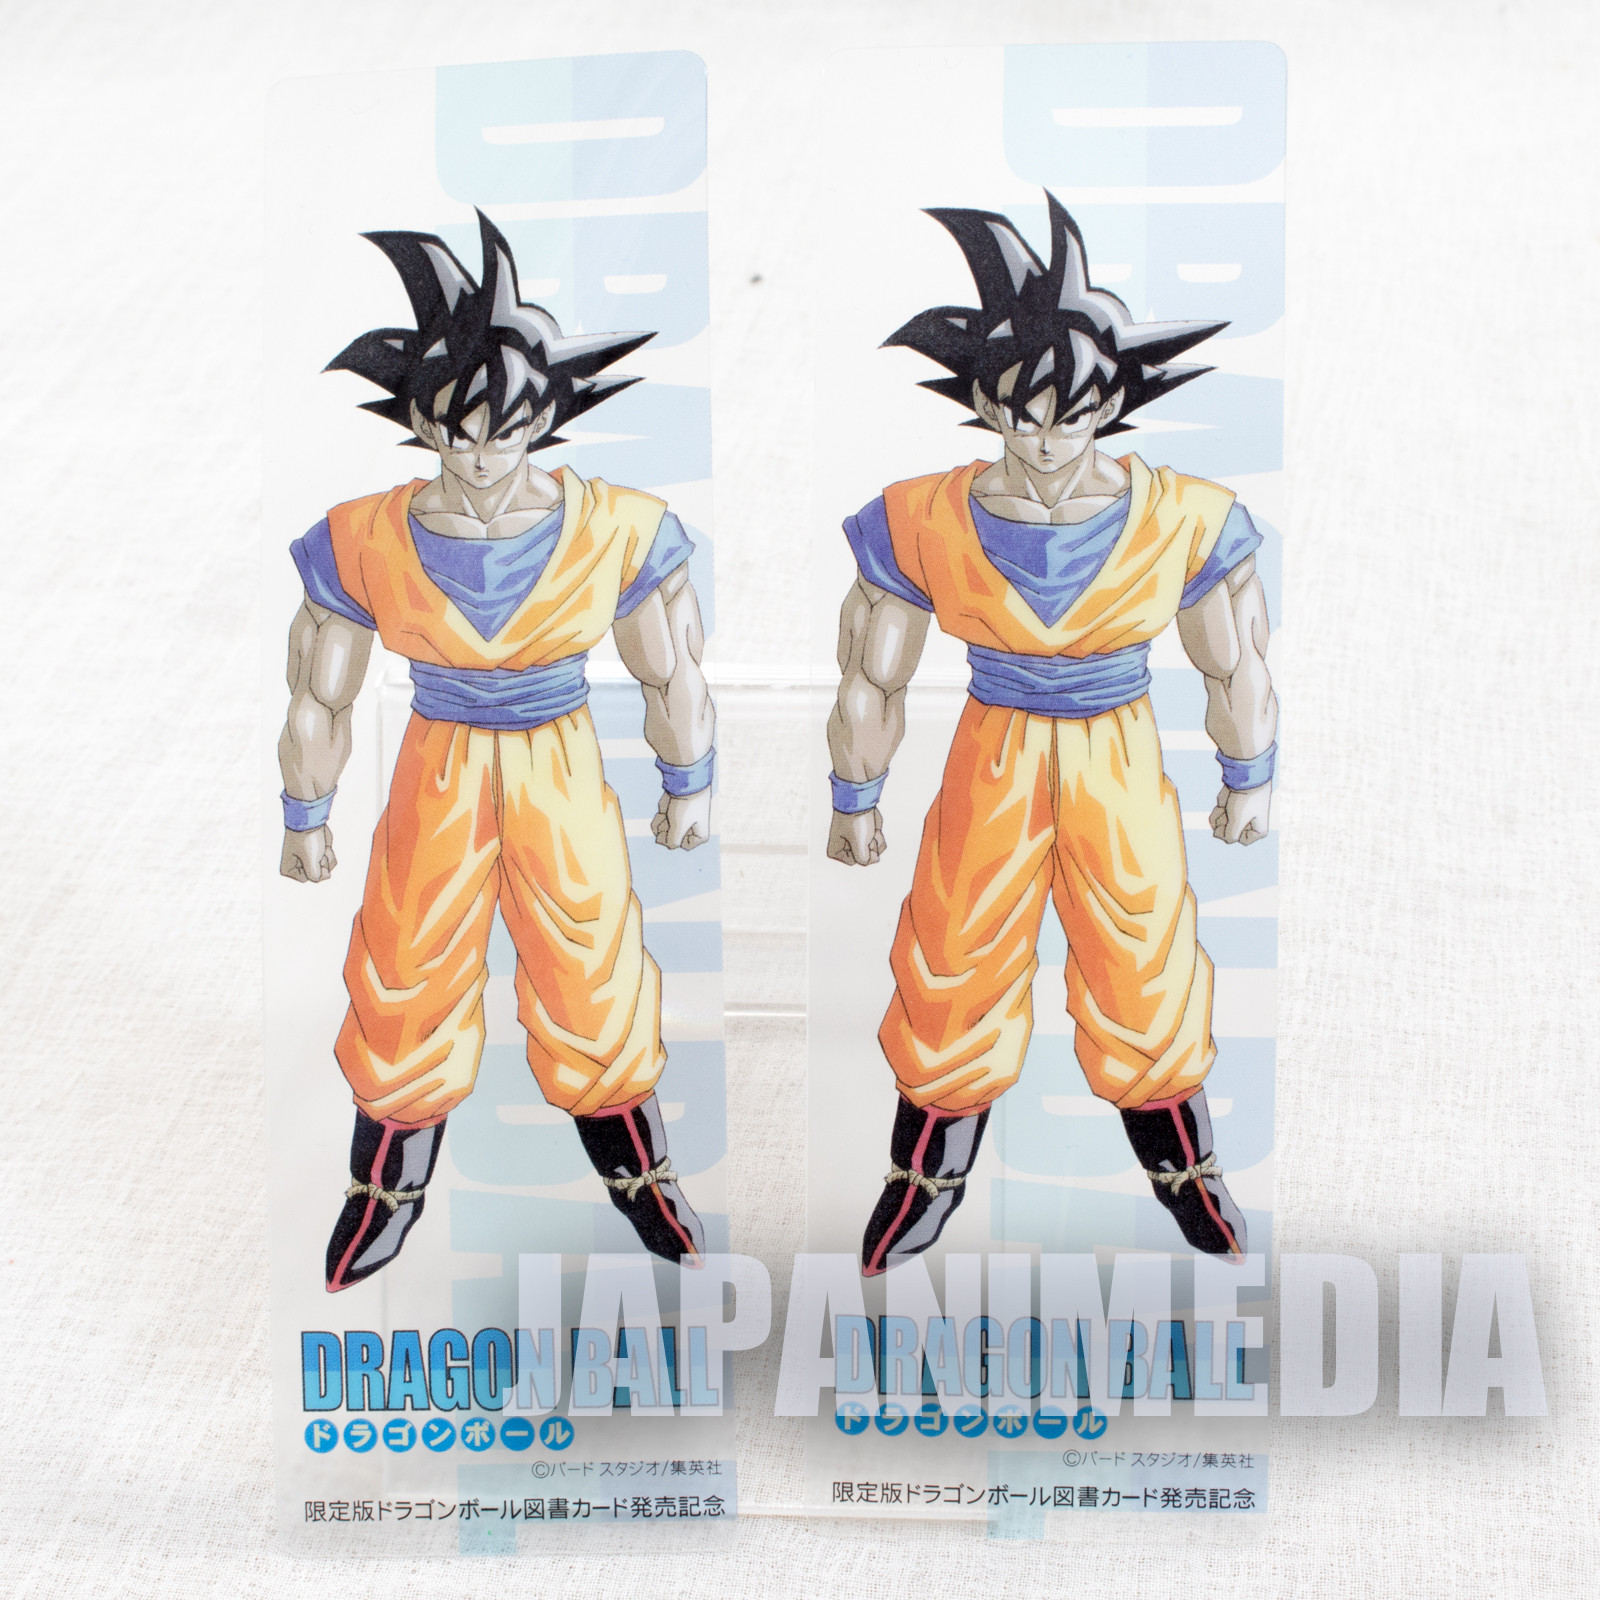 Retro RARE! Dragon Ball Z Clear Bookmarker 2pc Set Shonen Jump APAN ANIME MANGA